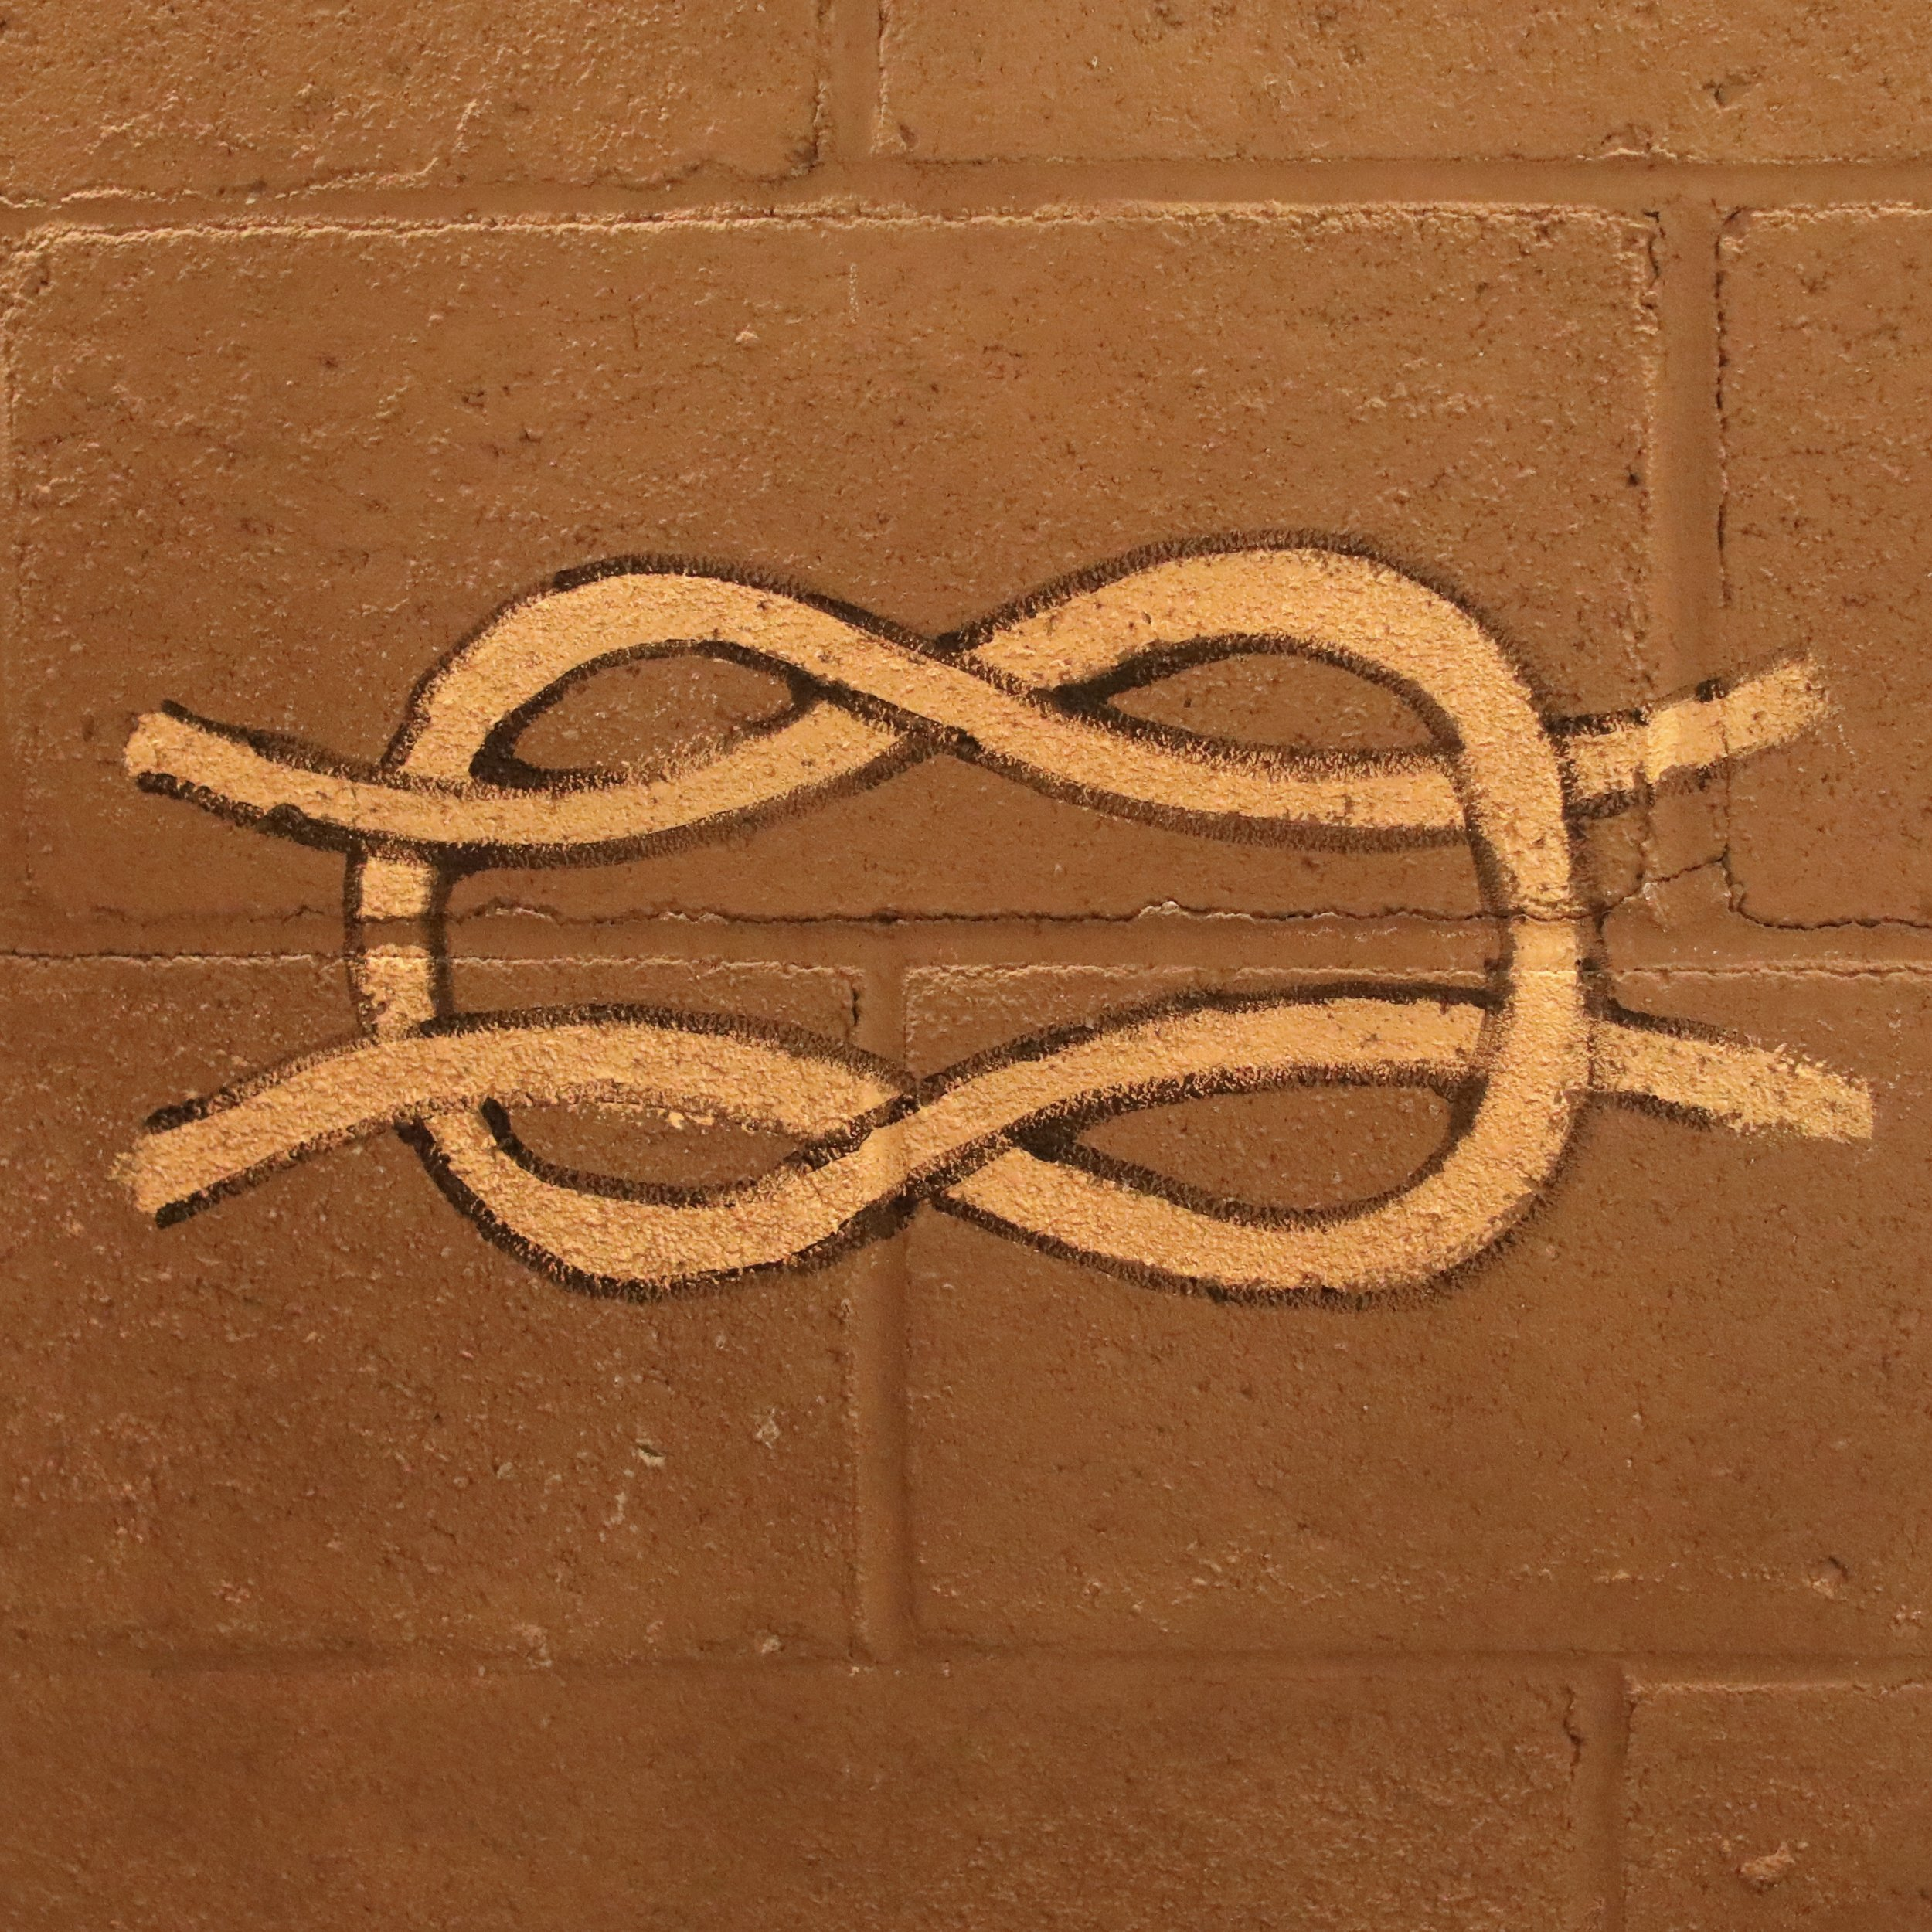 1. Square Knot